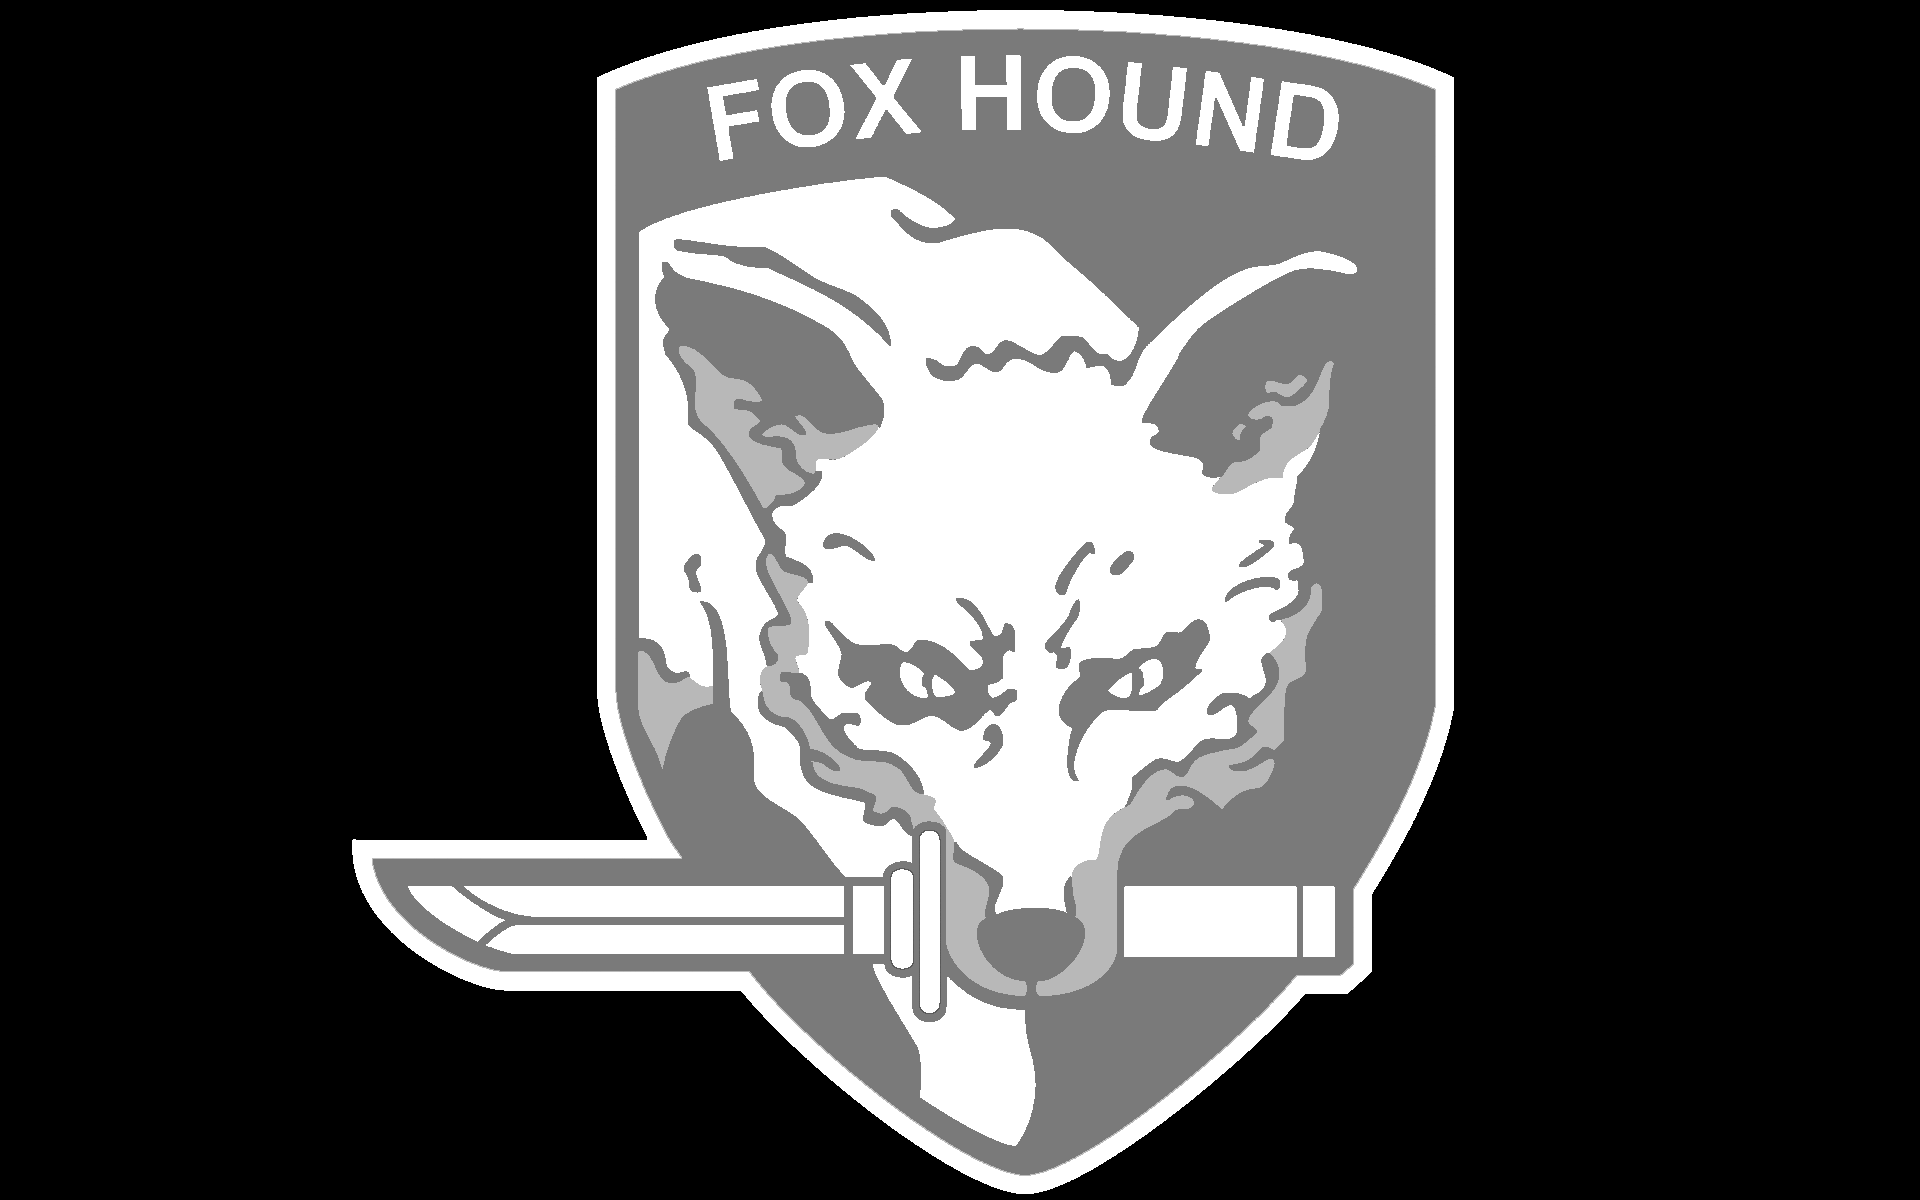 Foxhound Mgs Wallpapers